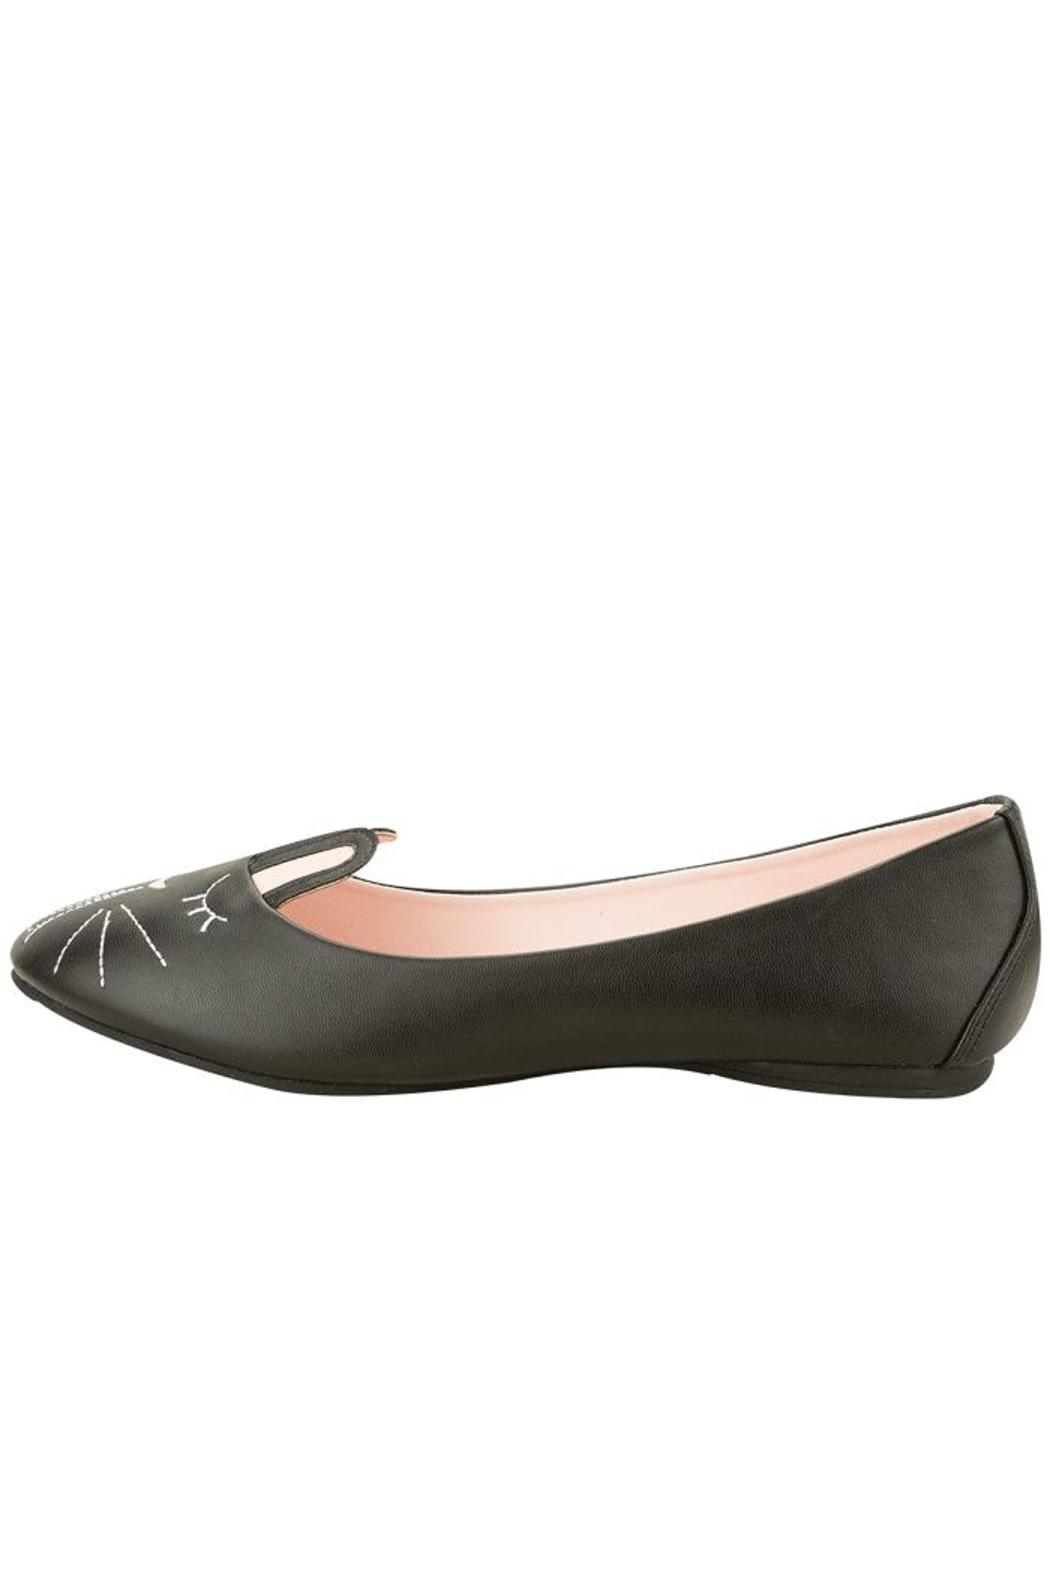 T.U.K. Shoes Black Bunny Flat - Front Cropped Image